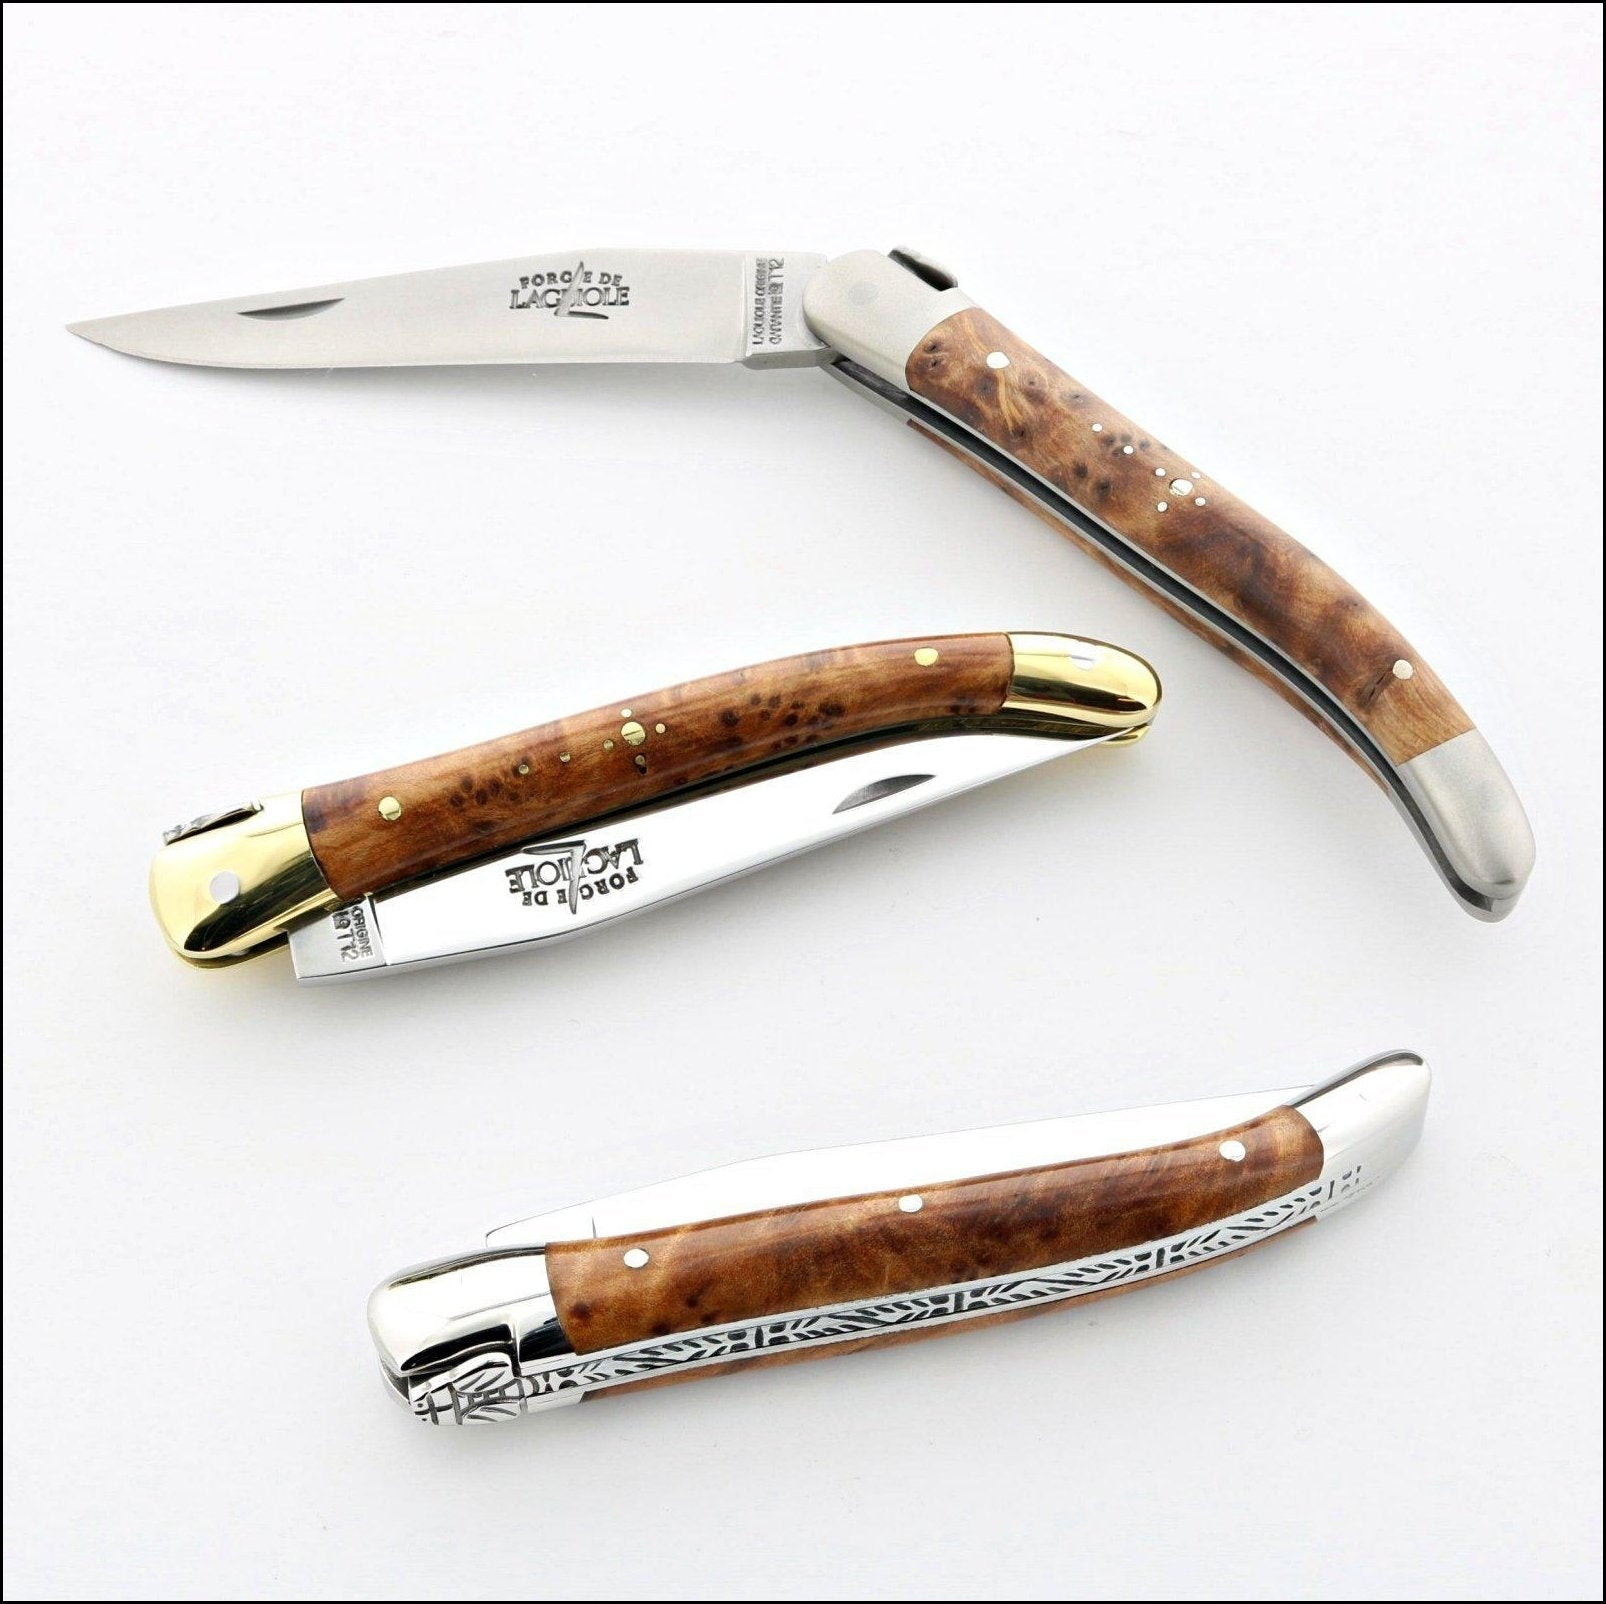 3 forge de laguiole knives of different finish. brass, shiny stainless  and brushed stainless. The wood handles are all thuya wood